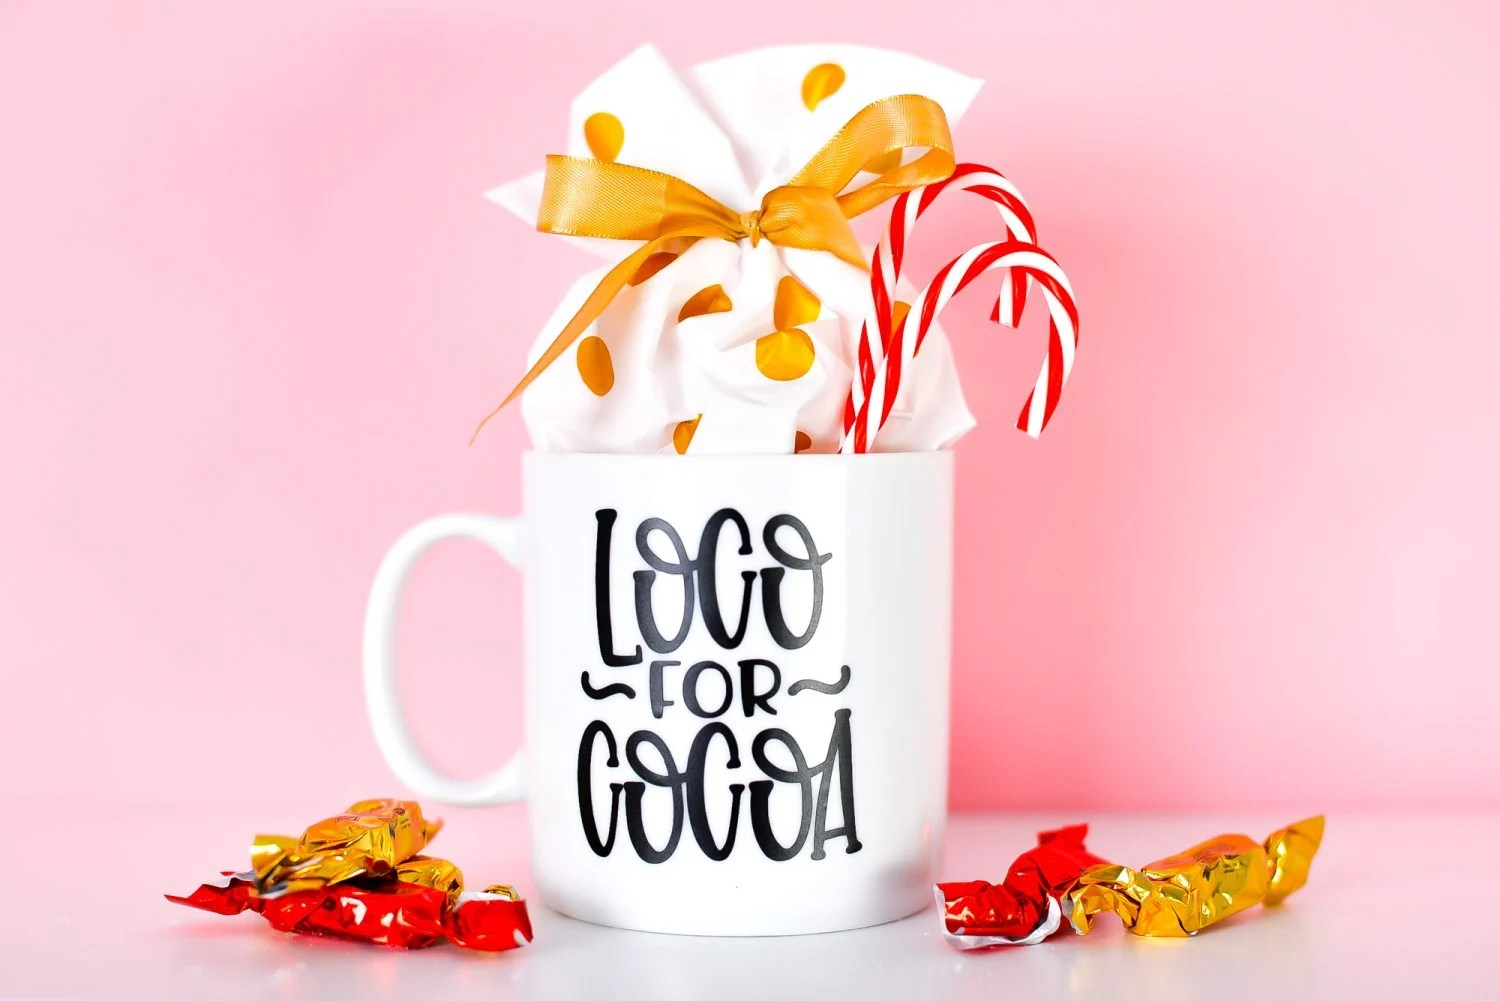 Finished loco for cocoa mug, staged with candy canes